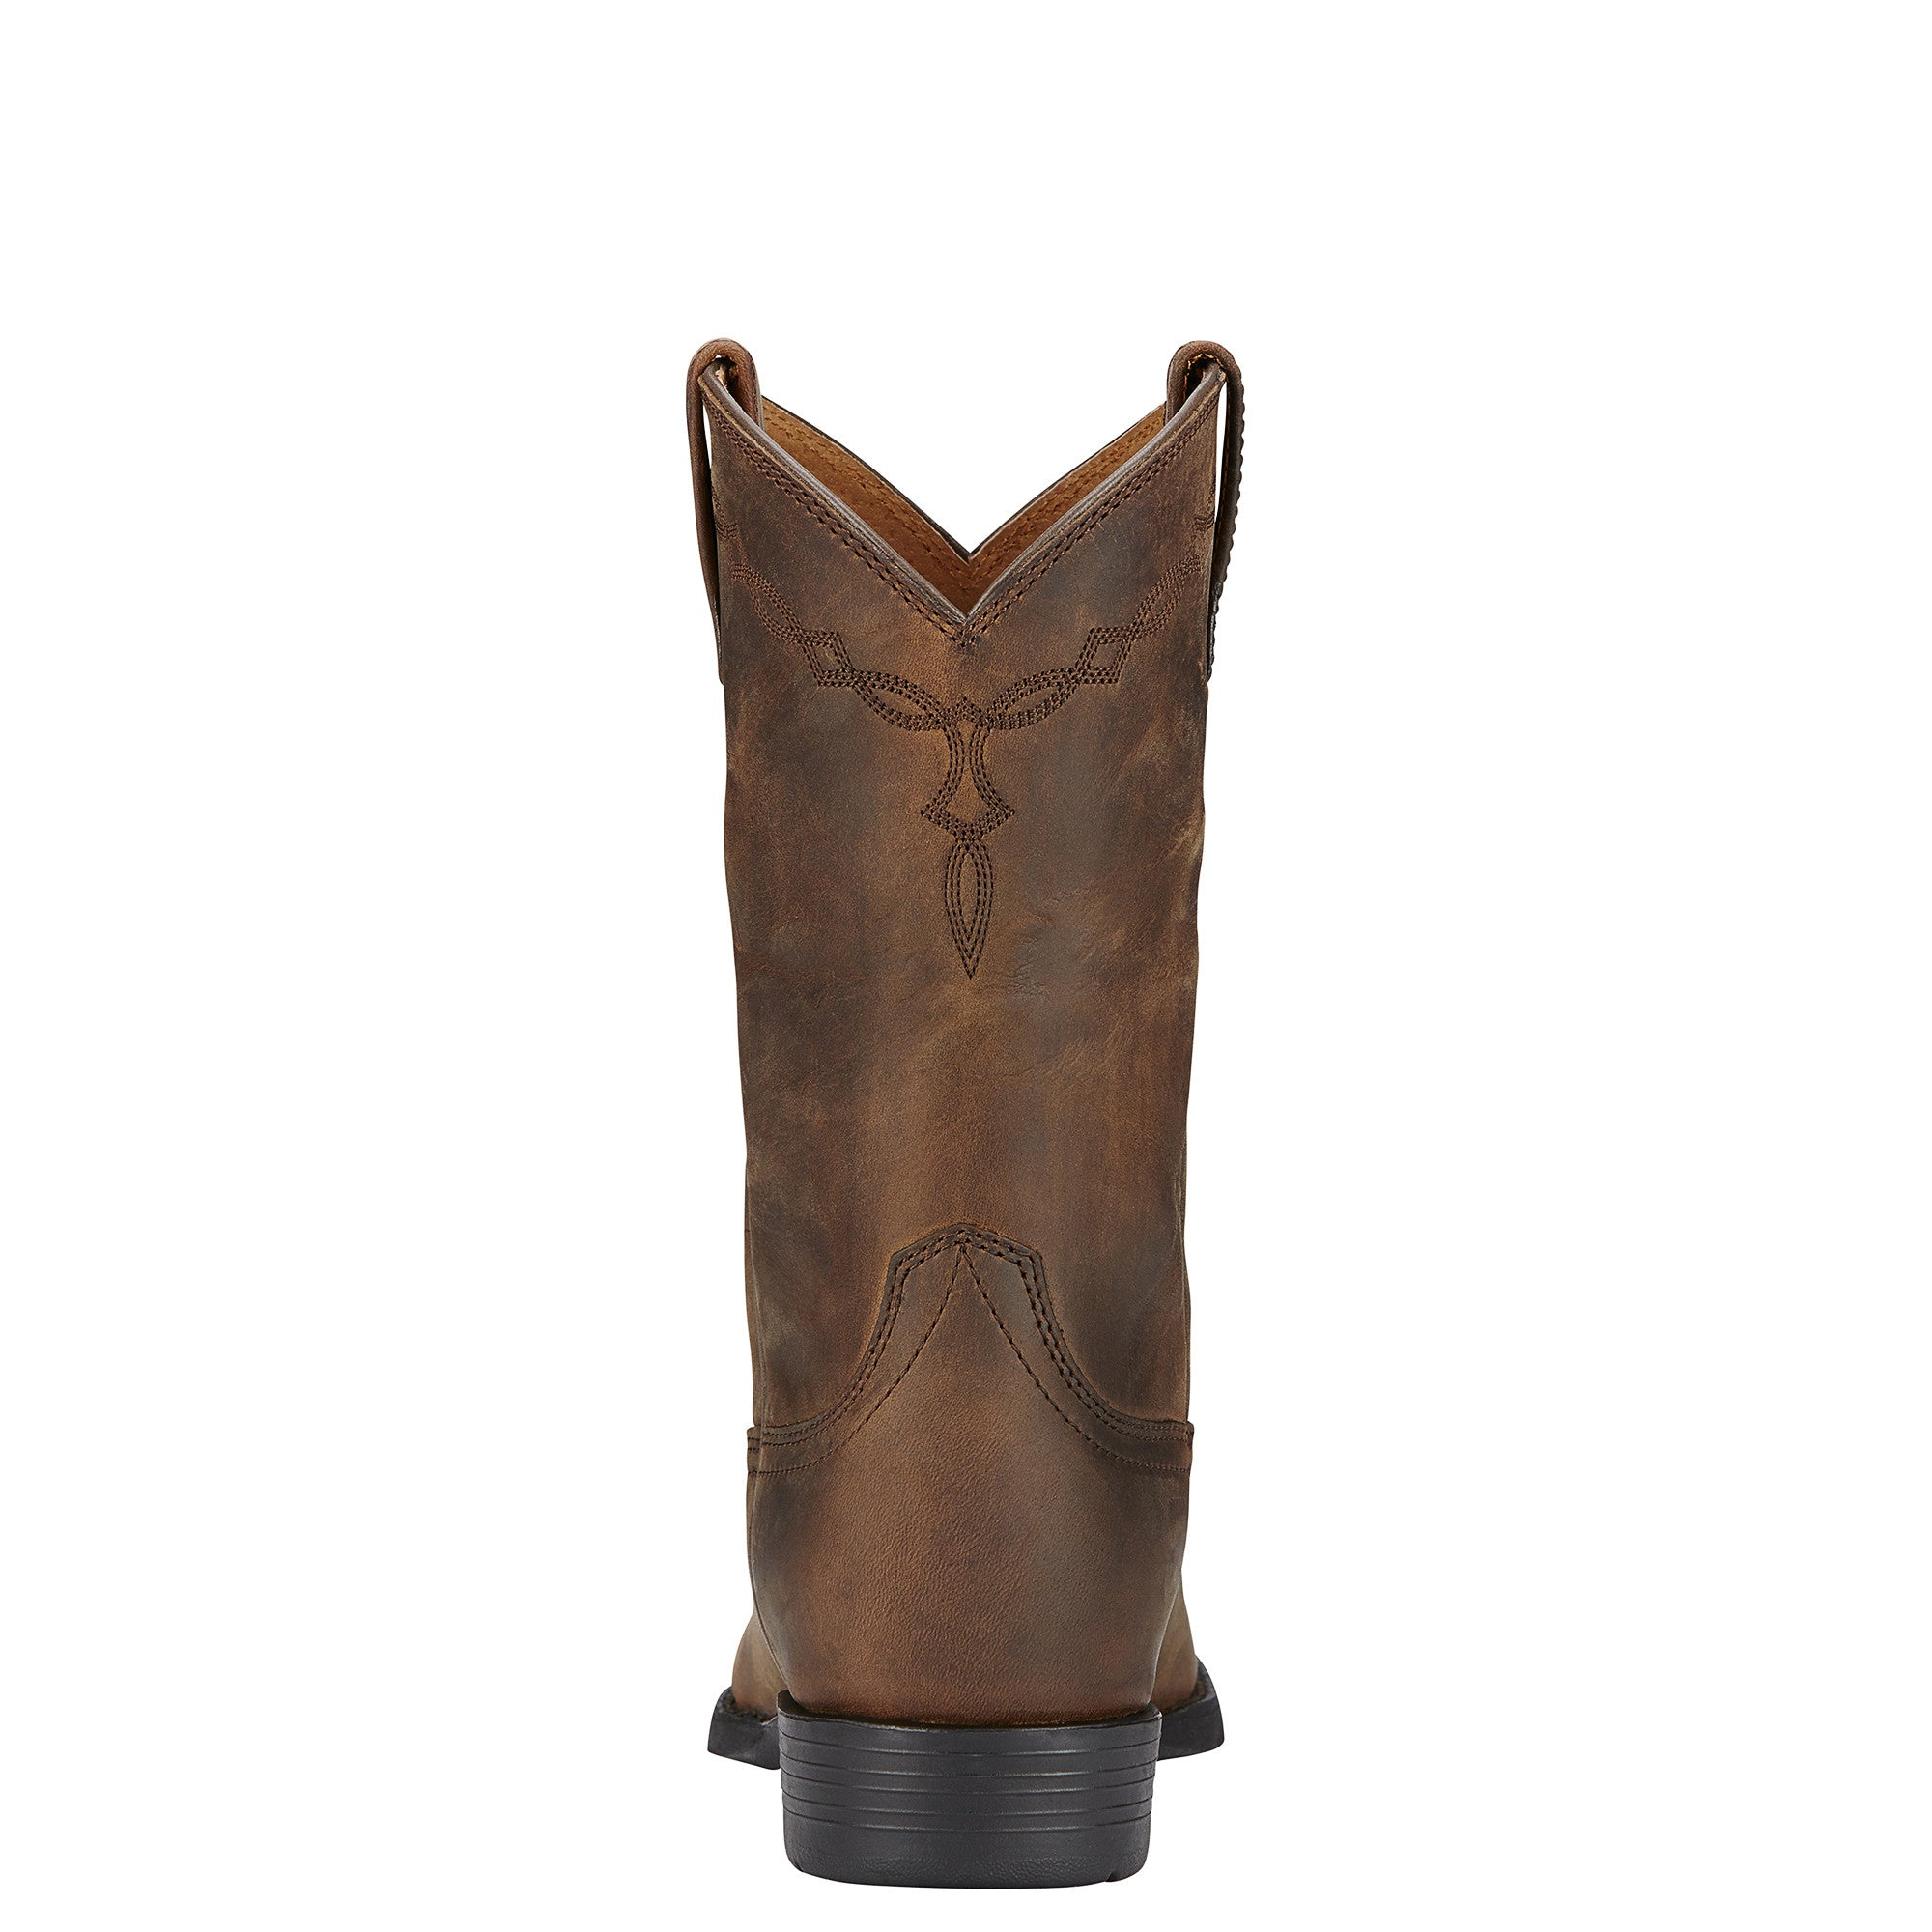 91543e05375 Women's Ariat Heritage Roper (Distressed Brown) – Frontier Western Store